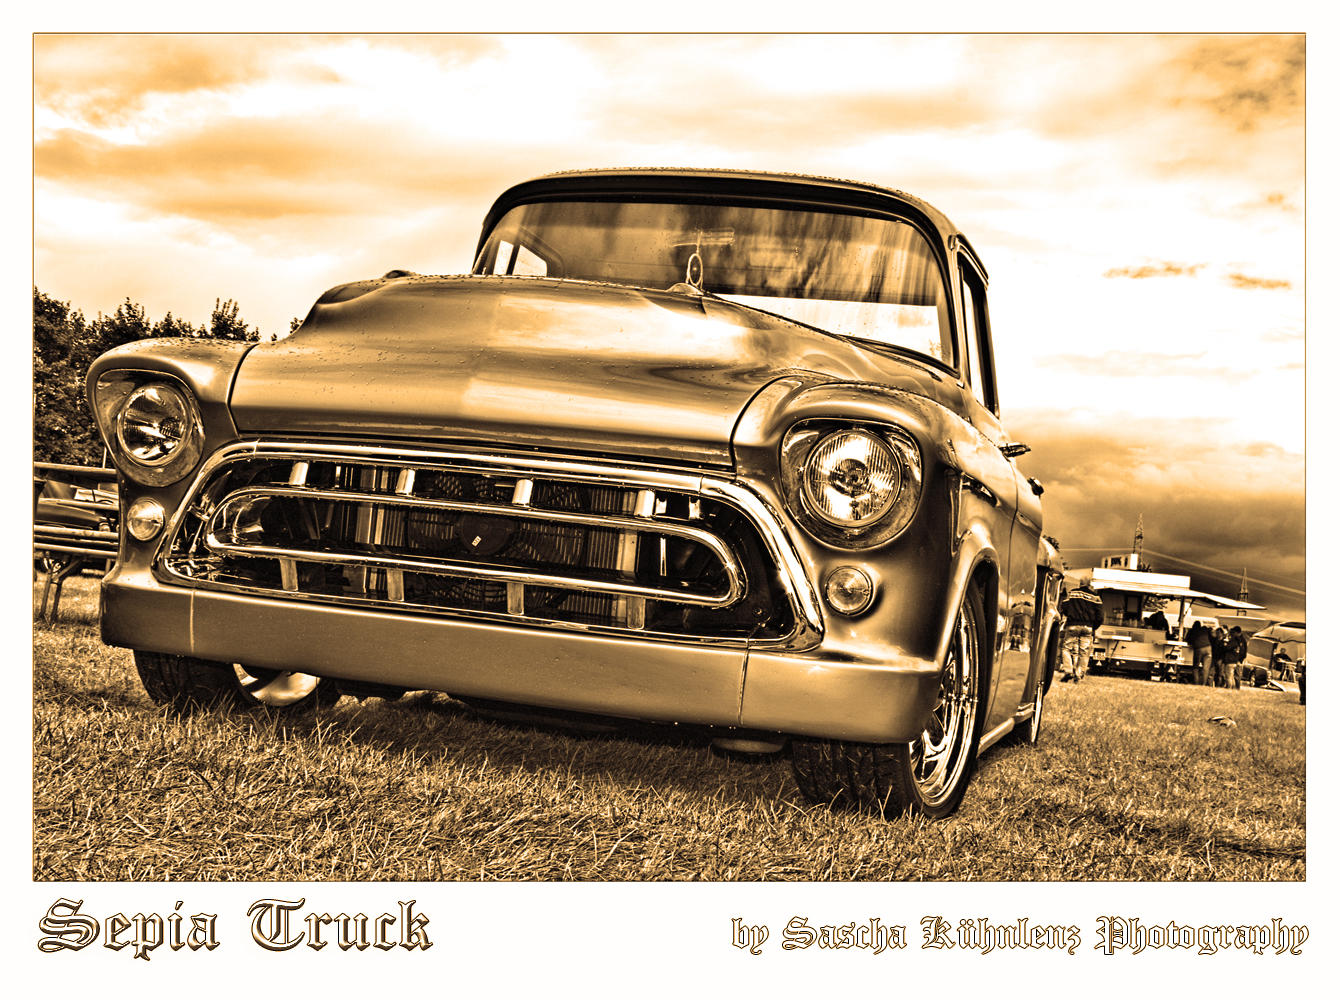 Chevy Truck ( Sepia-getont )